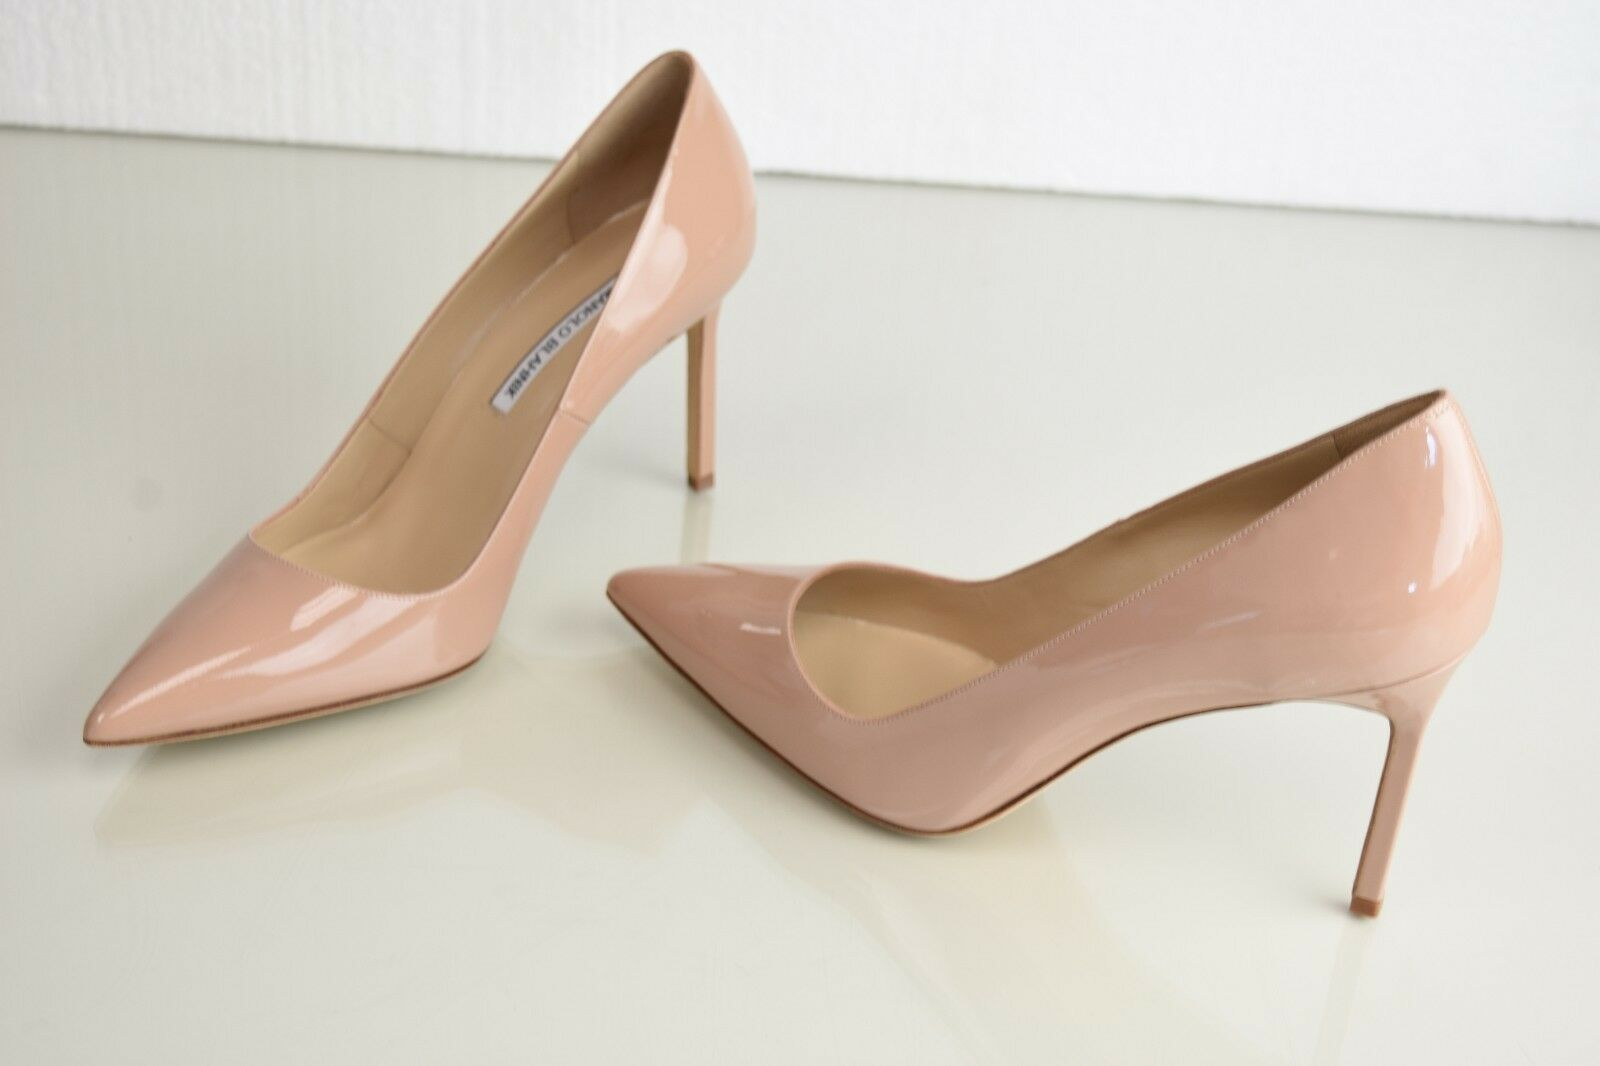 New Manolo Blahnik Stabipla 90 BB pumps Nude schuhes Patent  Leder Heels schuhes Nude 40.5 92dacc